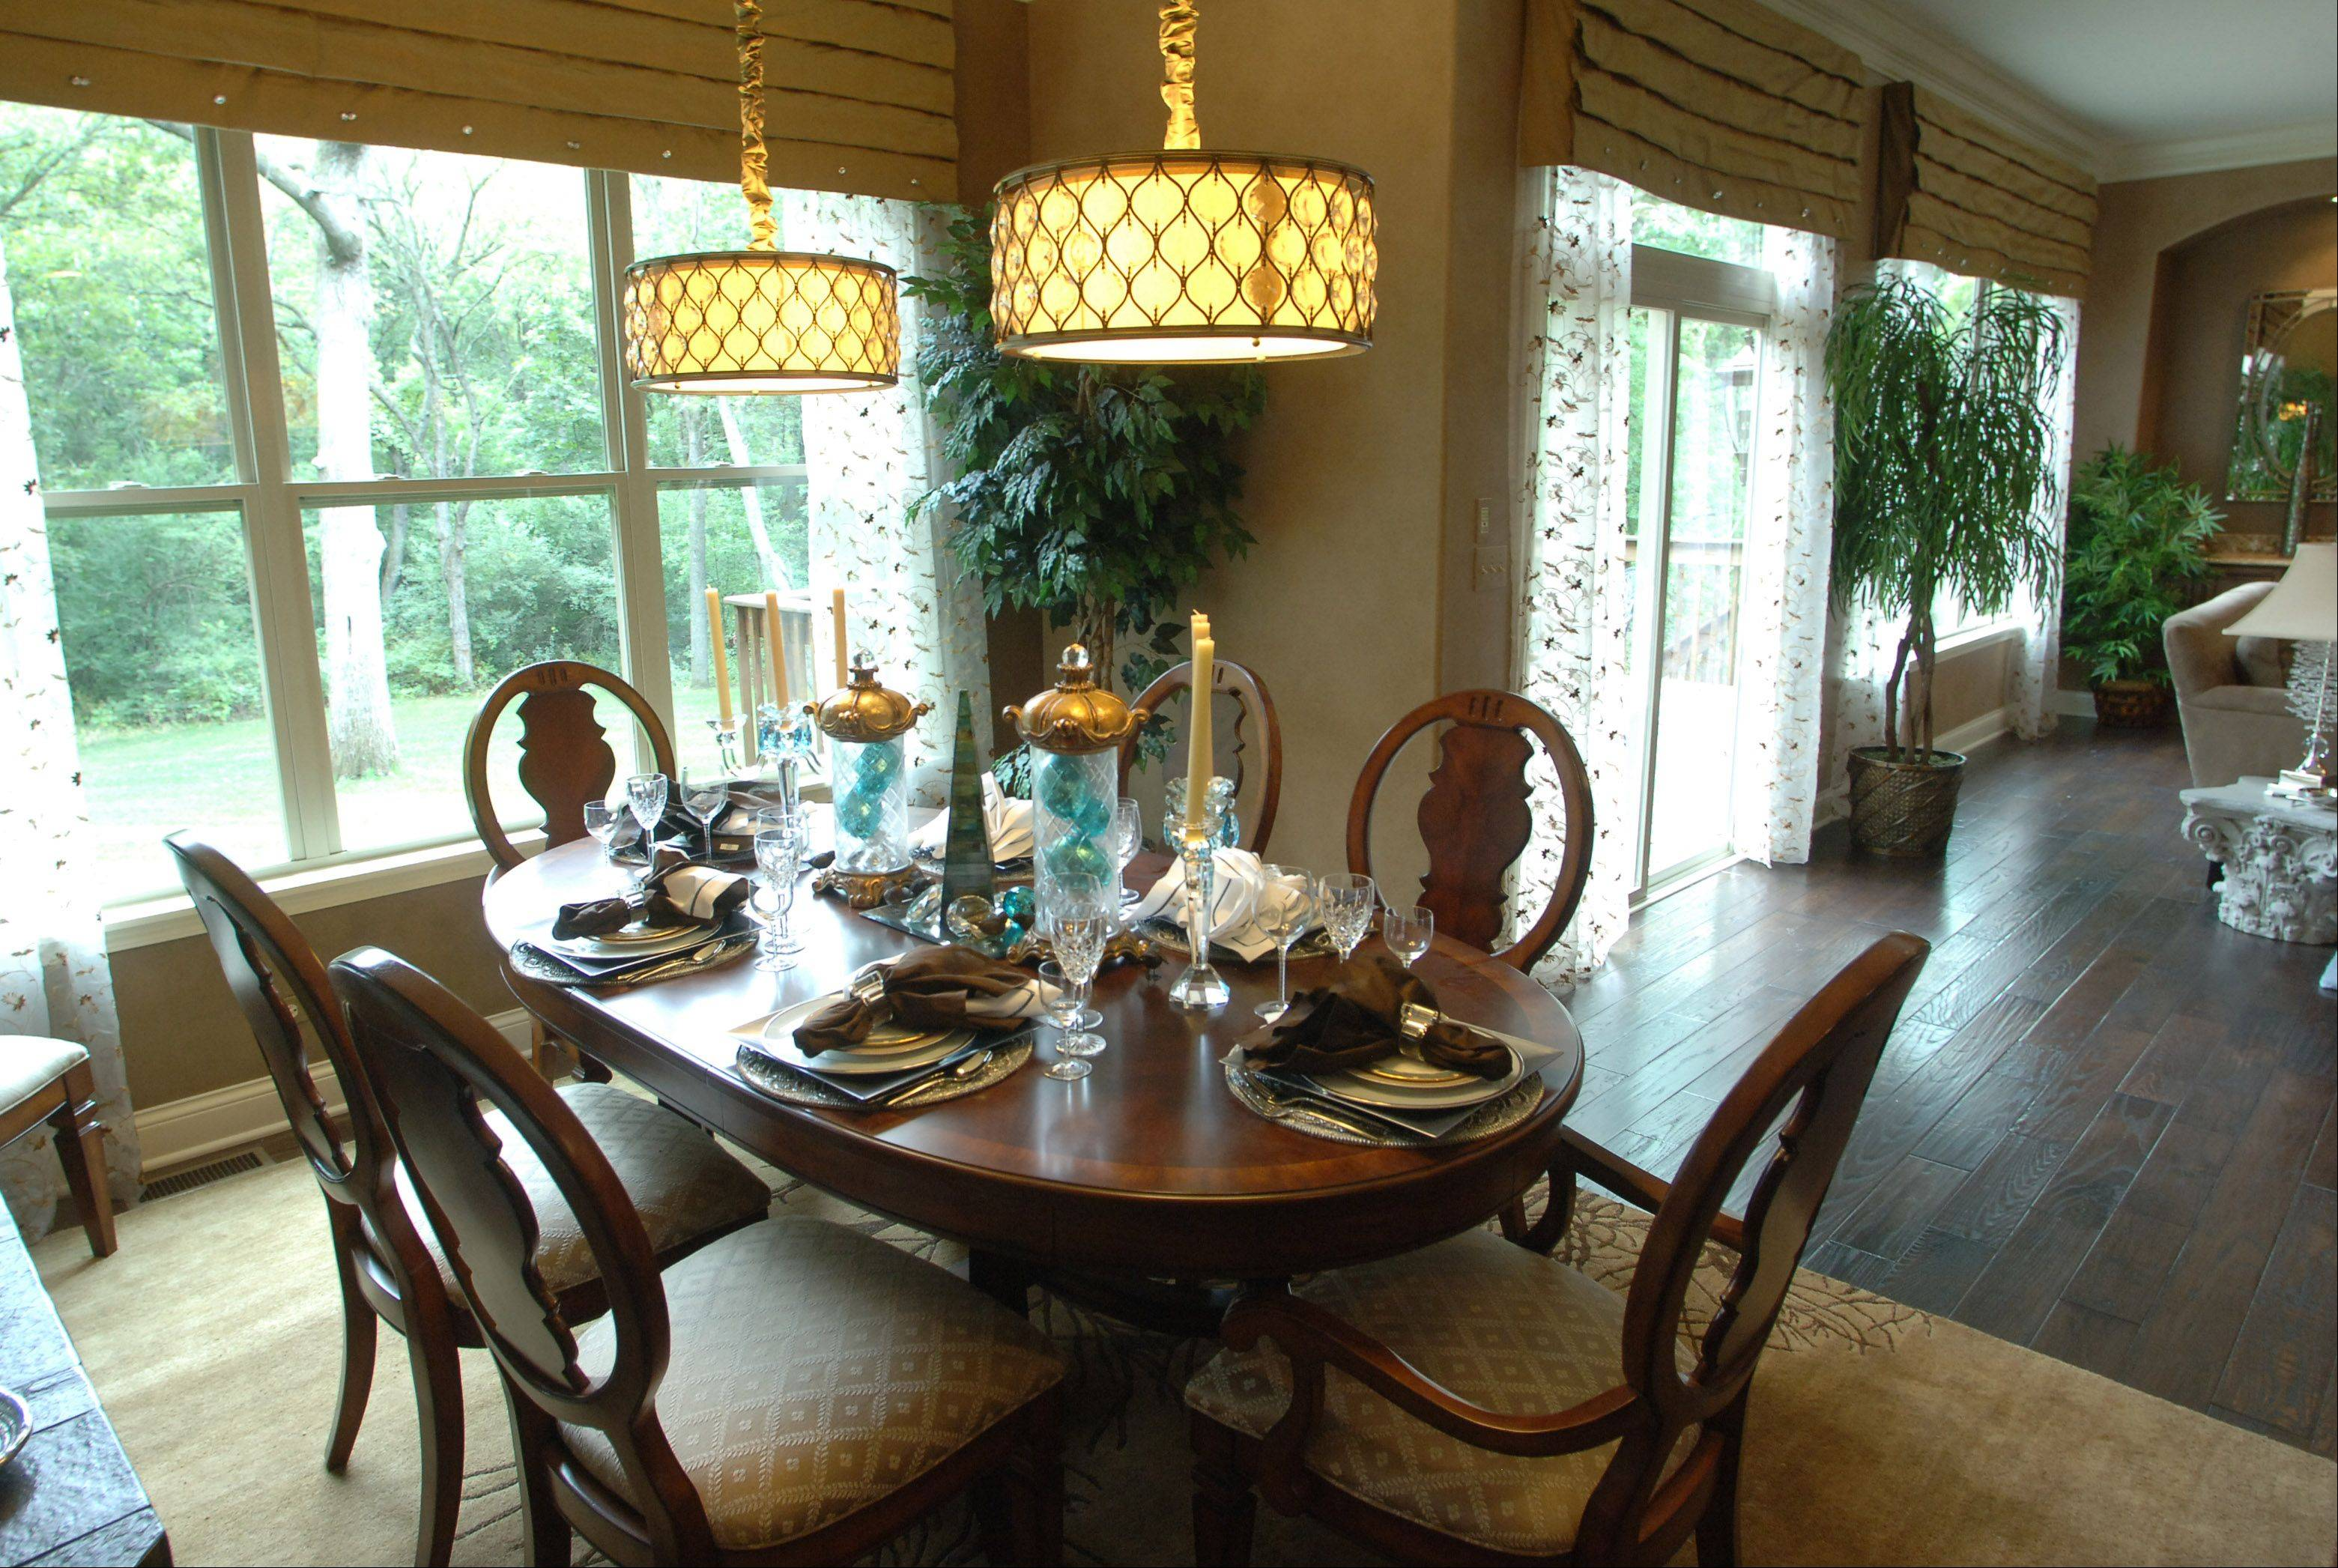 Dining area in the Sonoma model at Thousand Oaks in Spring Grove.